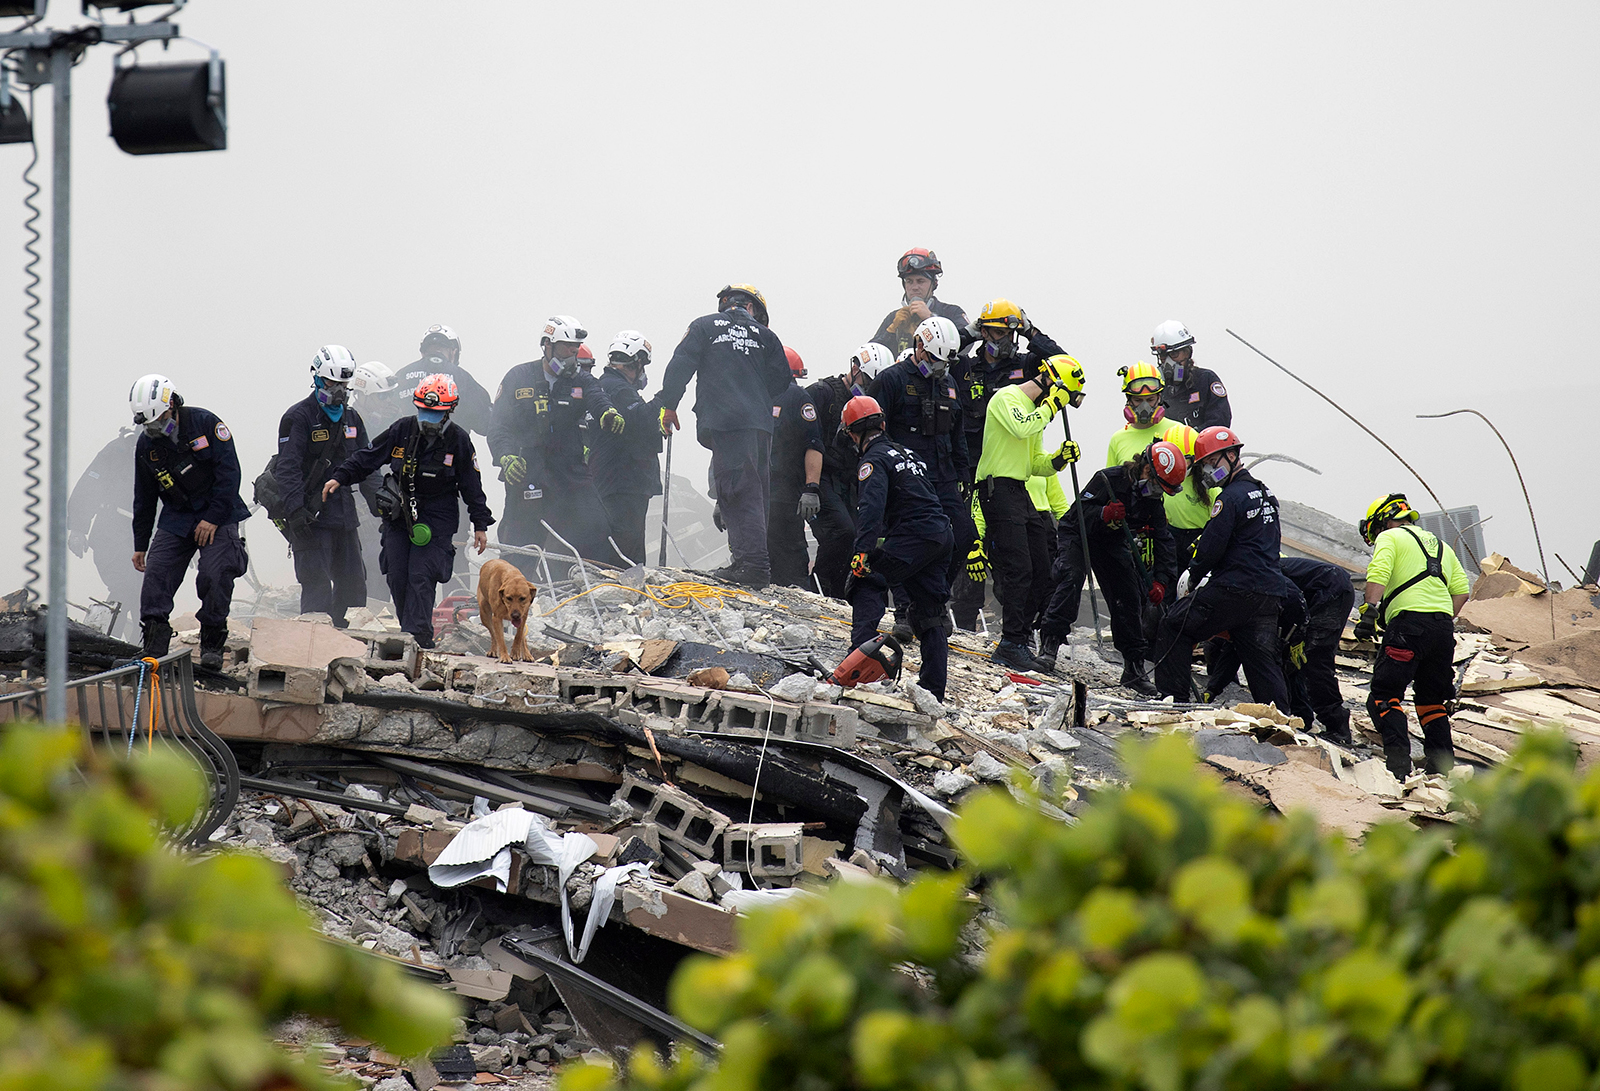 Members of the South Florida Urban Search and Rescue team look for possible survivors in the partially collapsed 12-story Champlain Towers South condo building on June 25, in Surfside, Florida.